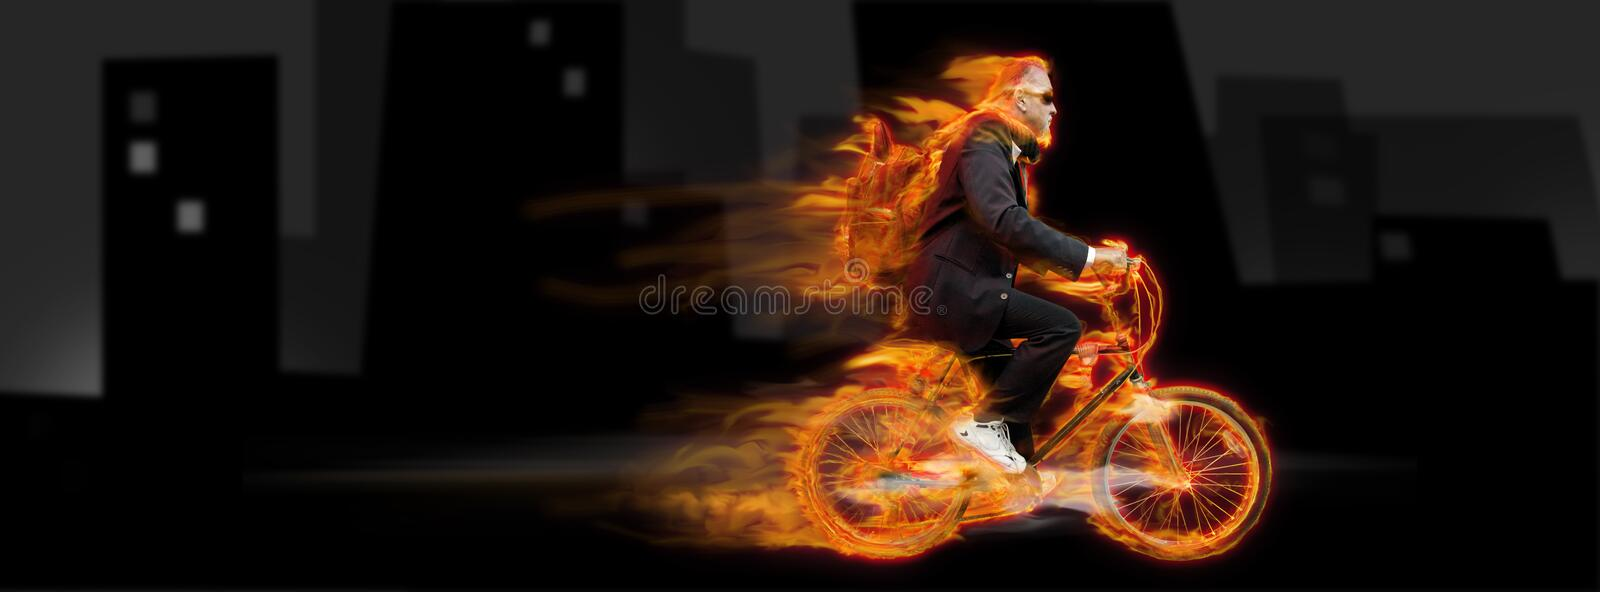 Bicycle man. A flaming bicycle carries a man with a backpack and in a business suite to his destination. Concept for being on the move